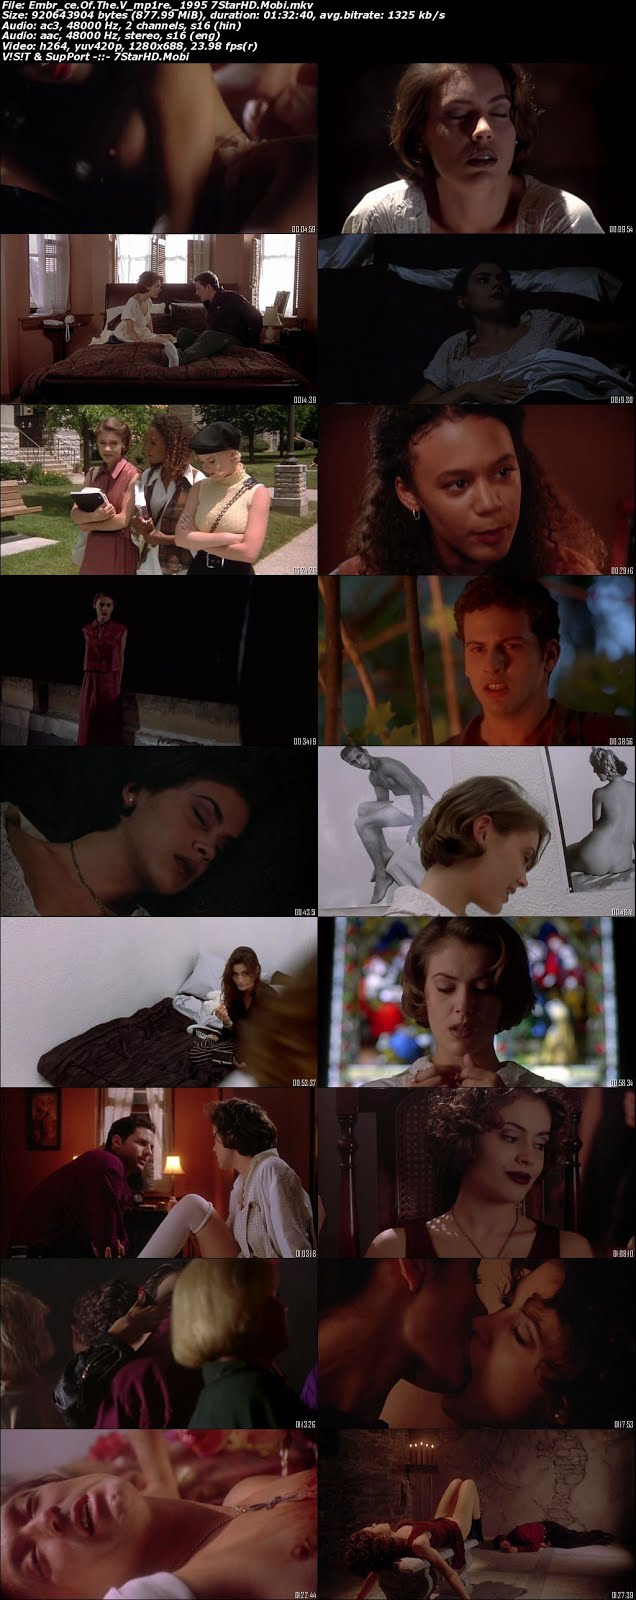 18+ Embrace of the Vampire (1995) Dual Audio 720p BluRay x264 [Hindi + English] ESubs 2